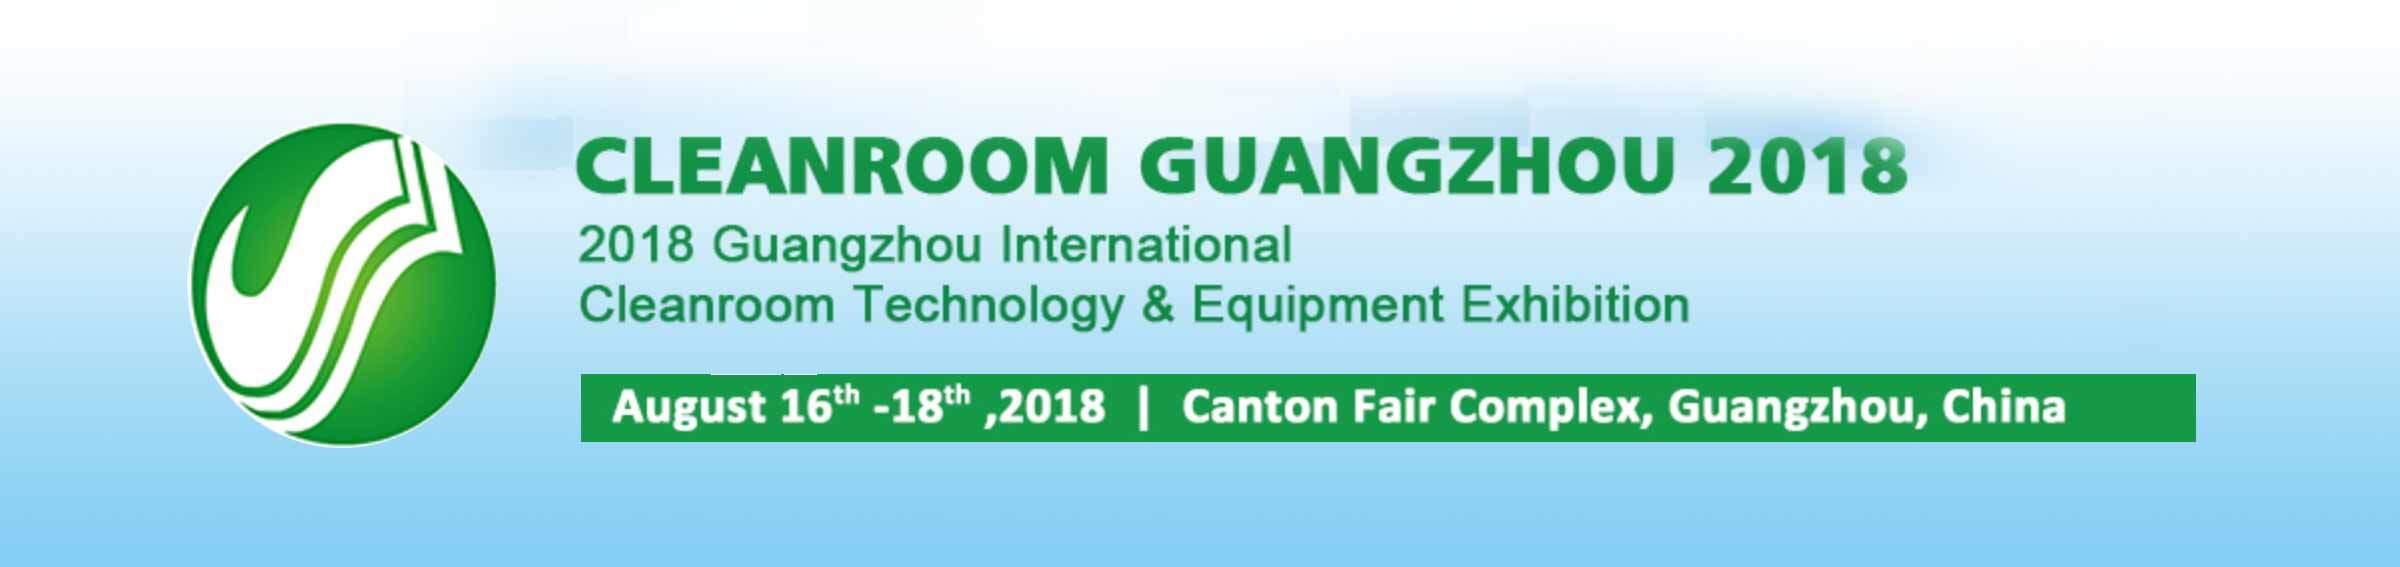 guangzhou exhibition cleanroom